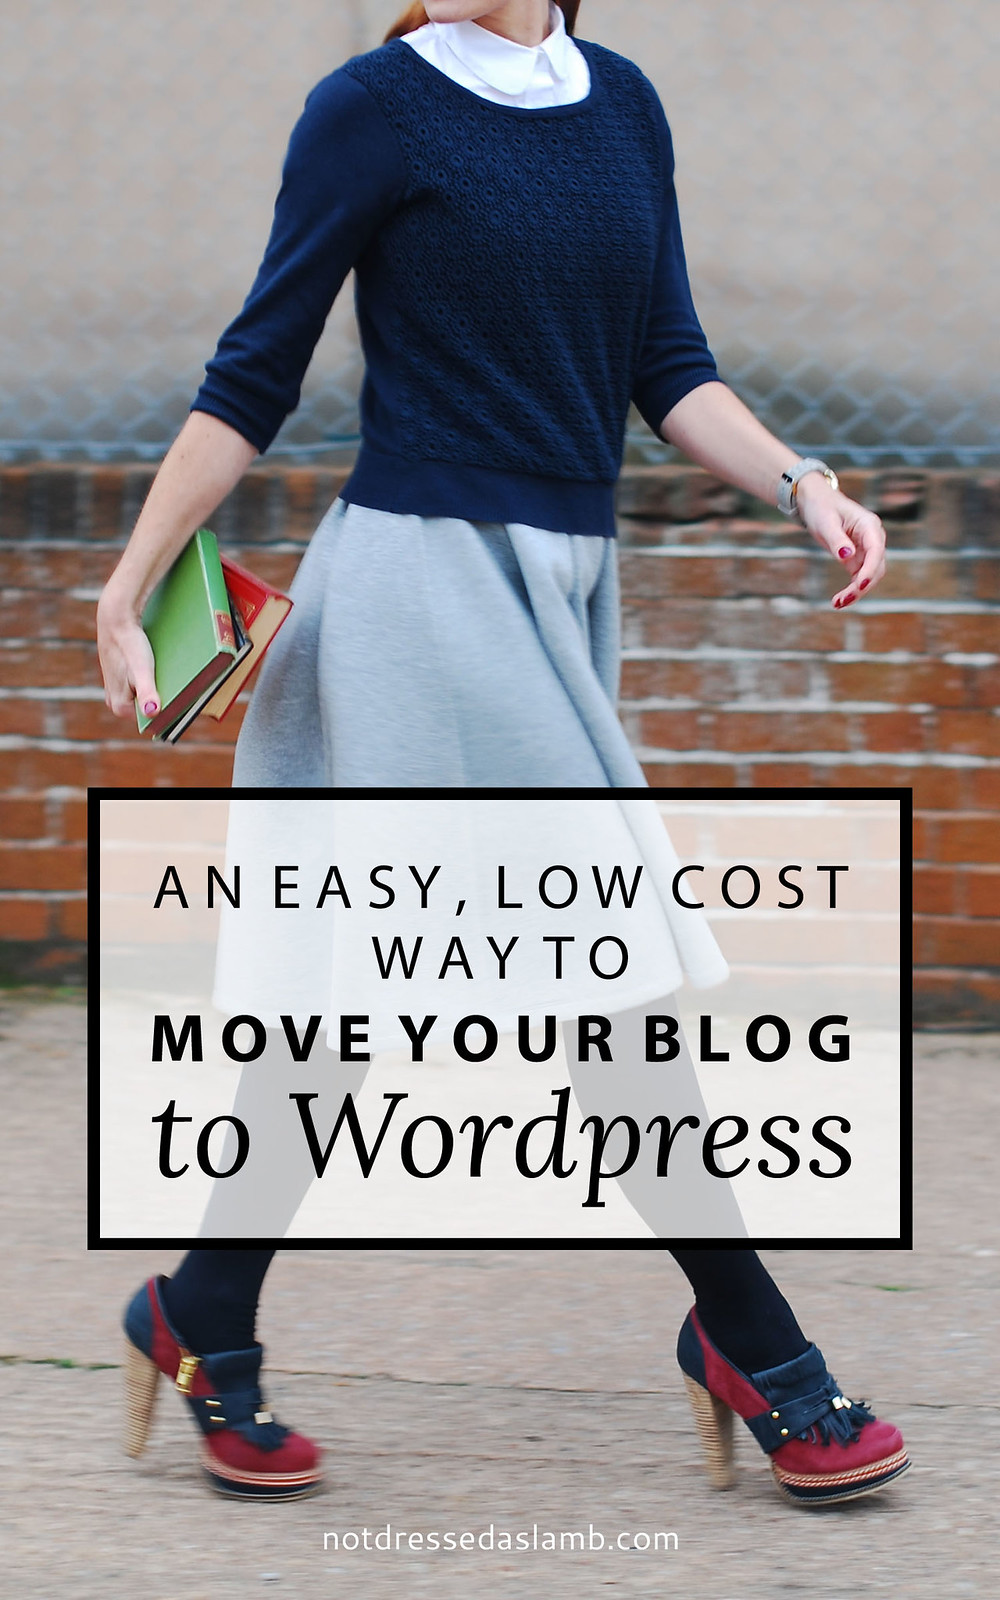 How to Move Your Blog to WordPress Quickly, Easily and Affordably